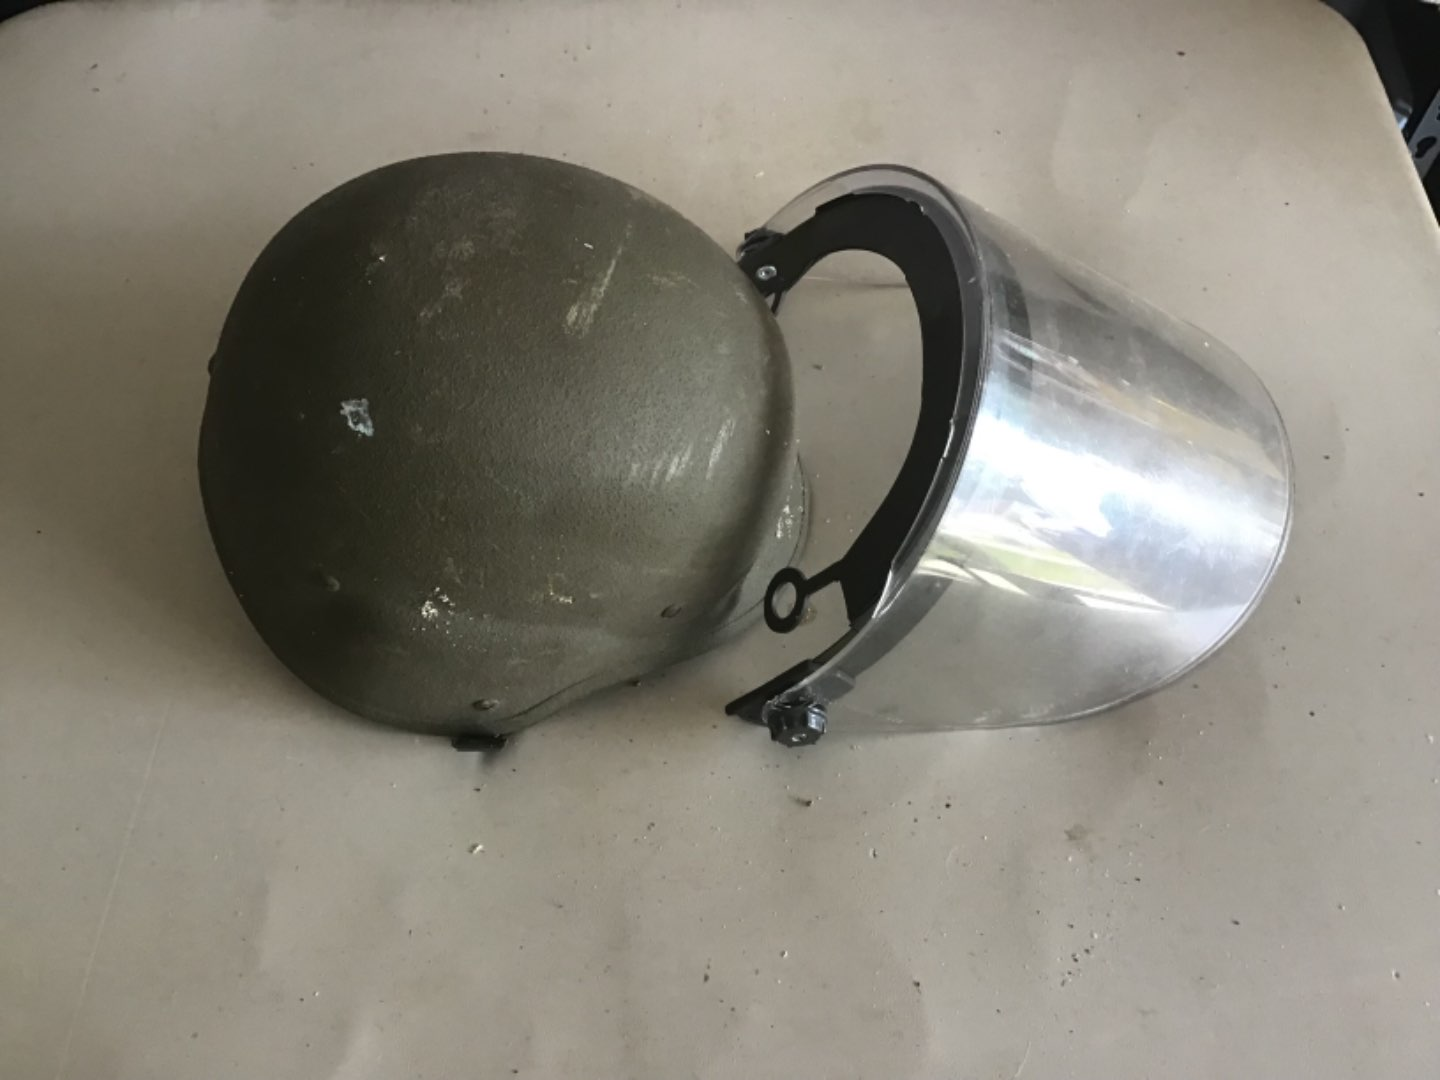 Lot # 152 US MILITARY OR RIOT POLICE HELMET W/SHIELD - See Descrip in Lot 142